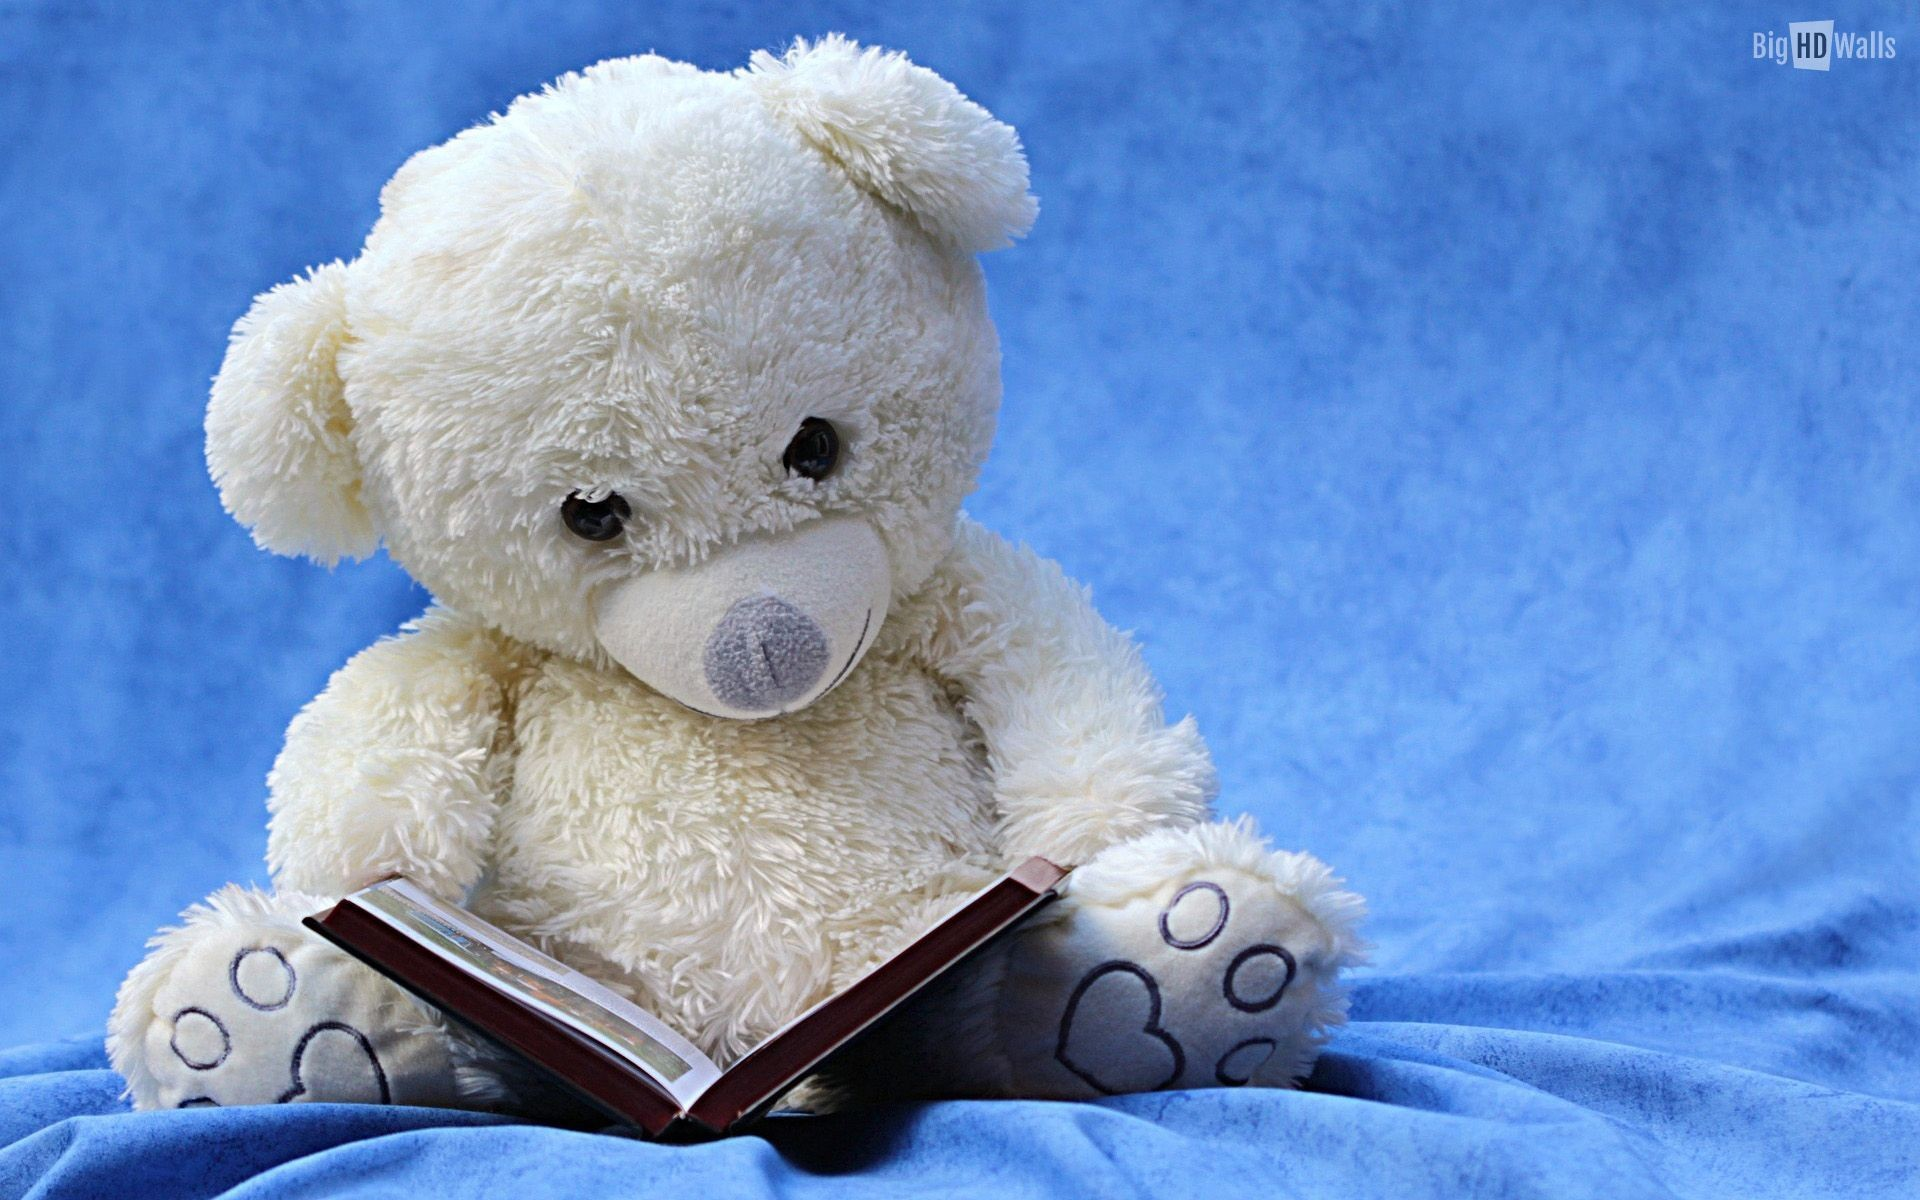 Res: 1920x1200, Amazing Cute Teddy Bear Wallpaper for PC & Mac, Laptop, Tablet, Mobile Phone